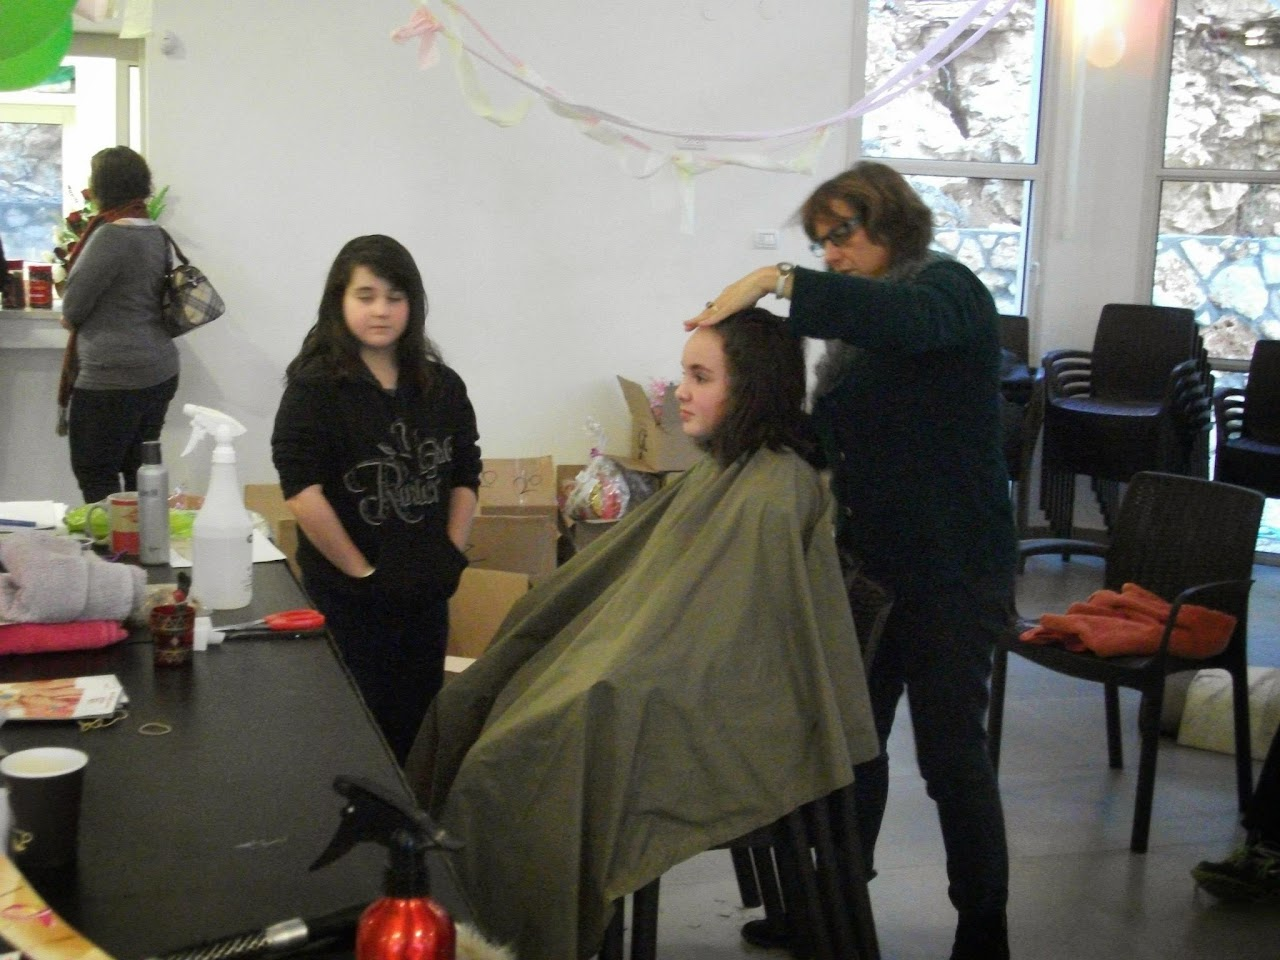 Donating hair for cancer patients 2014  - 1957871_539677186148579_1242473103_o.jpg